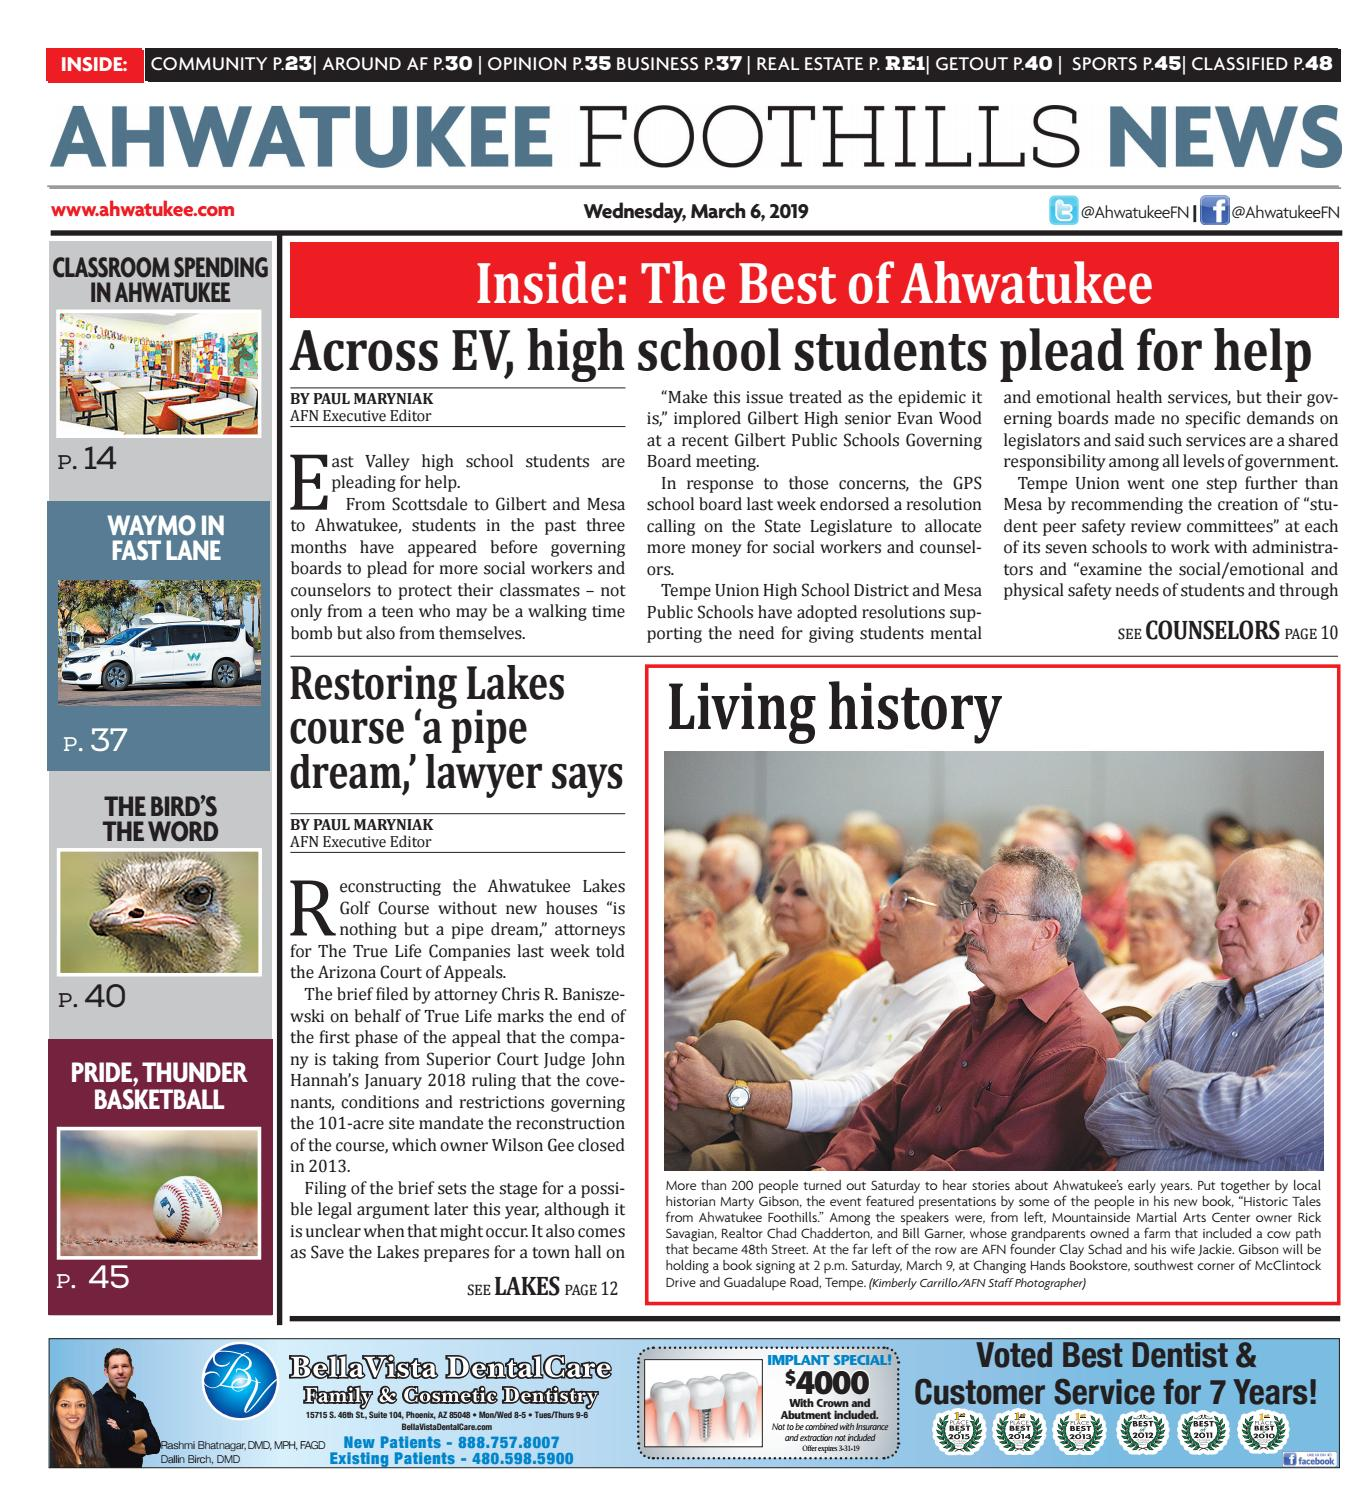 Ahwatukee Foothills News - March 6, 2019 by Times Media